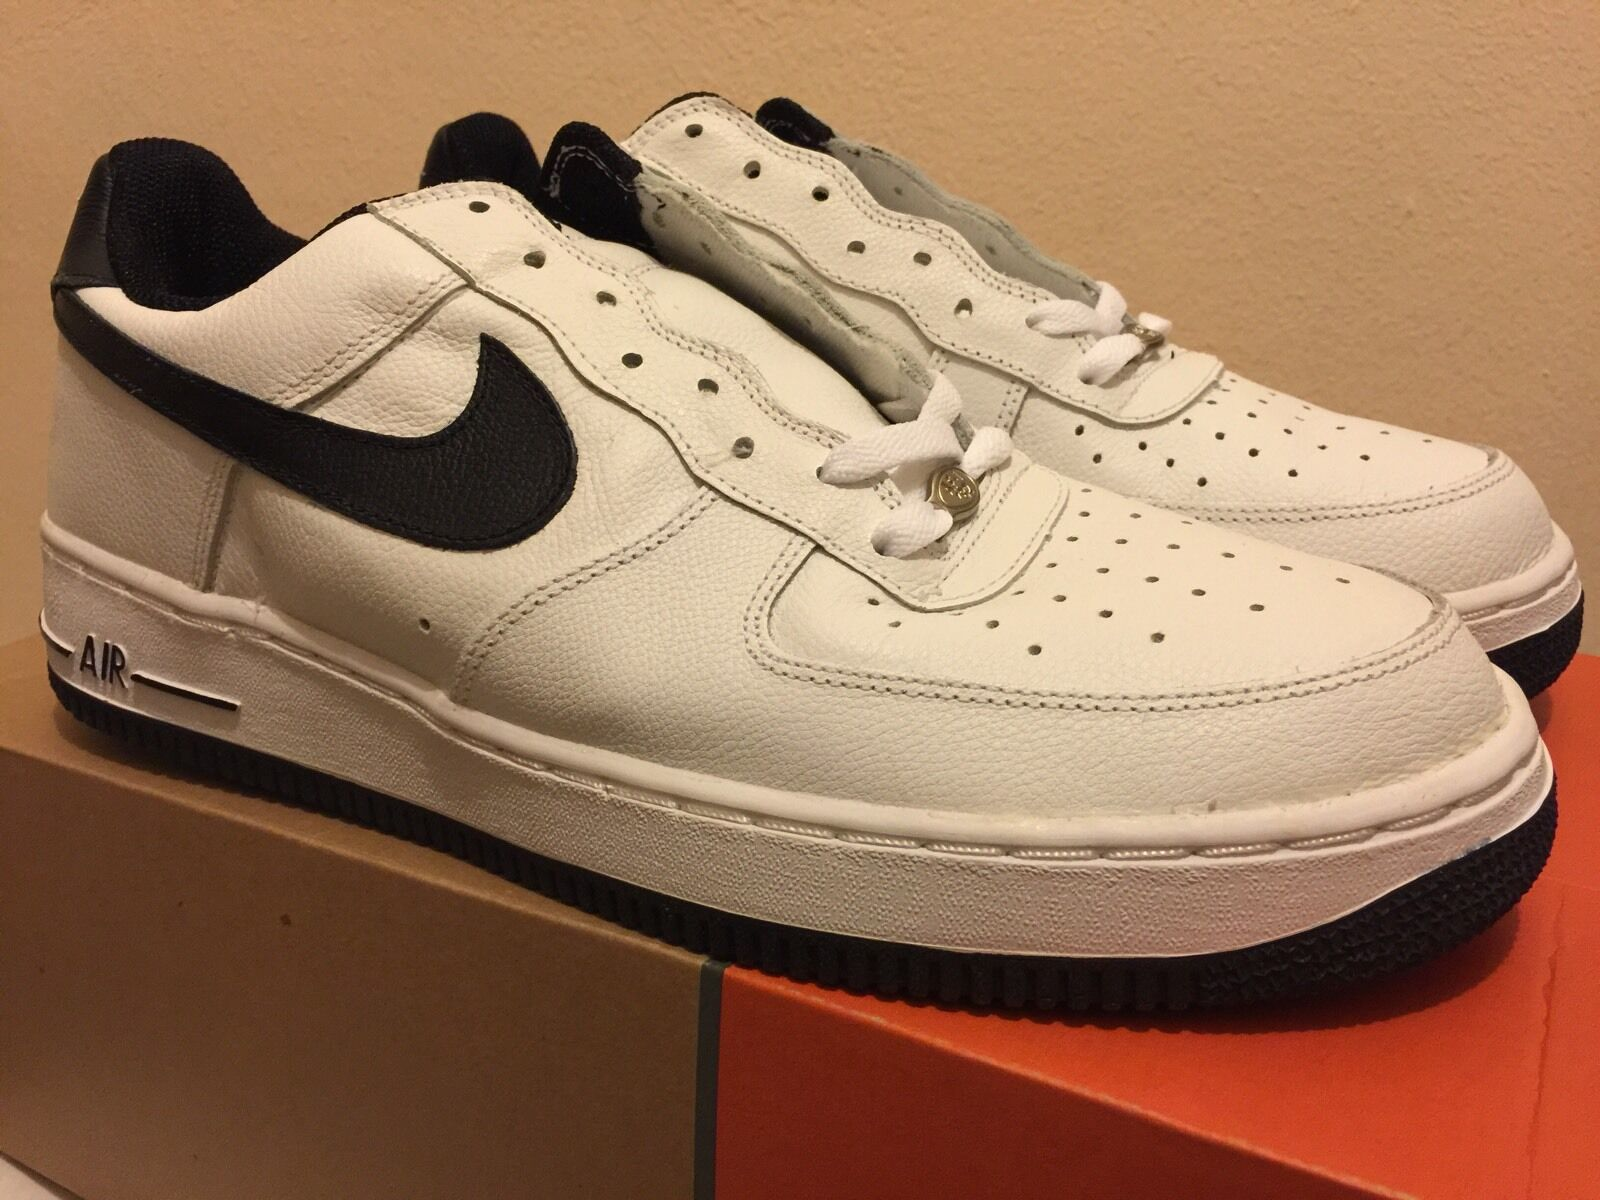 Nike Air Force 1B White / LE Black Size 12.5 2001 LE / DS NEW SUPREME VINTAGE dbbb37